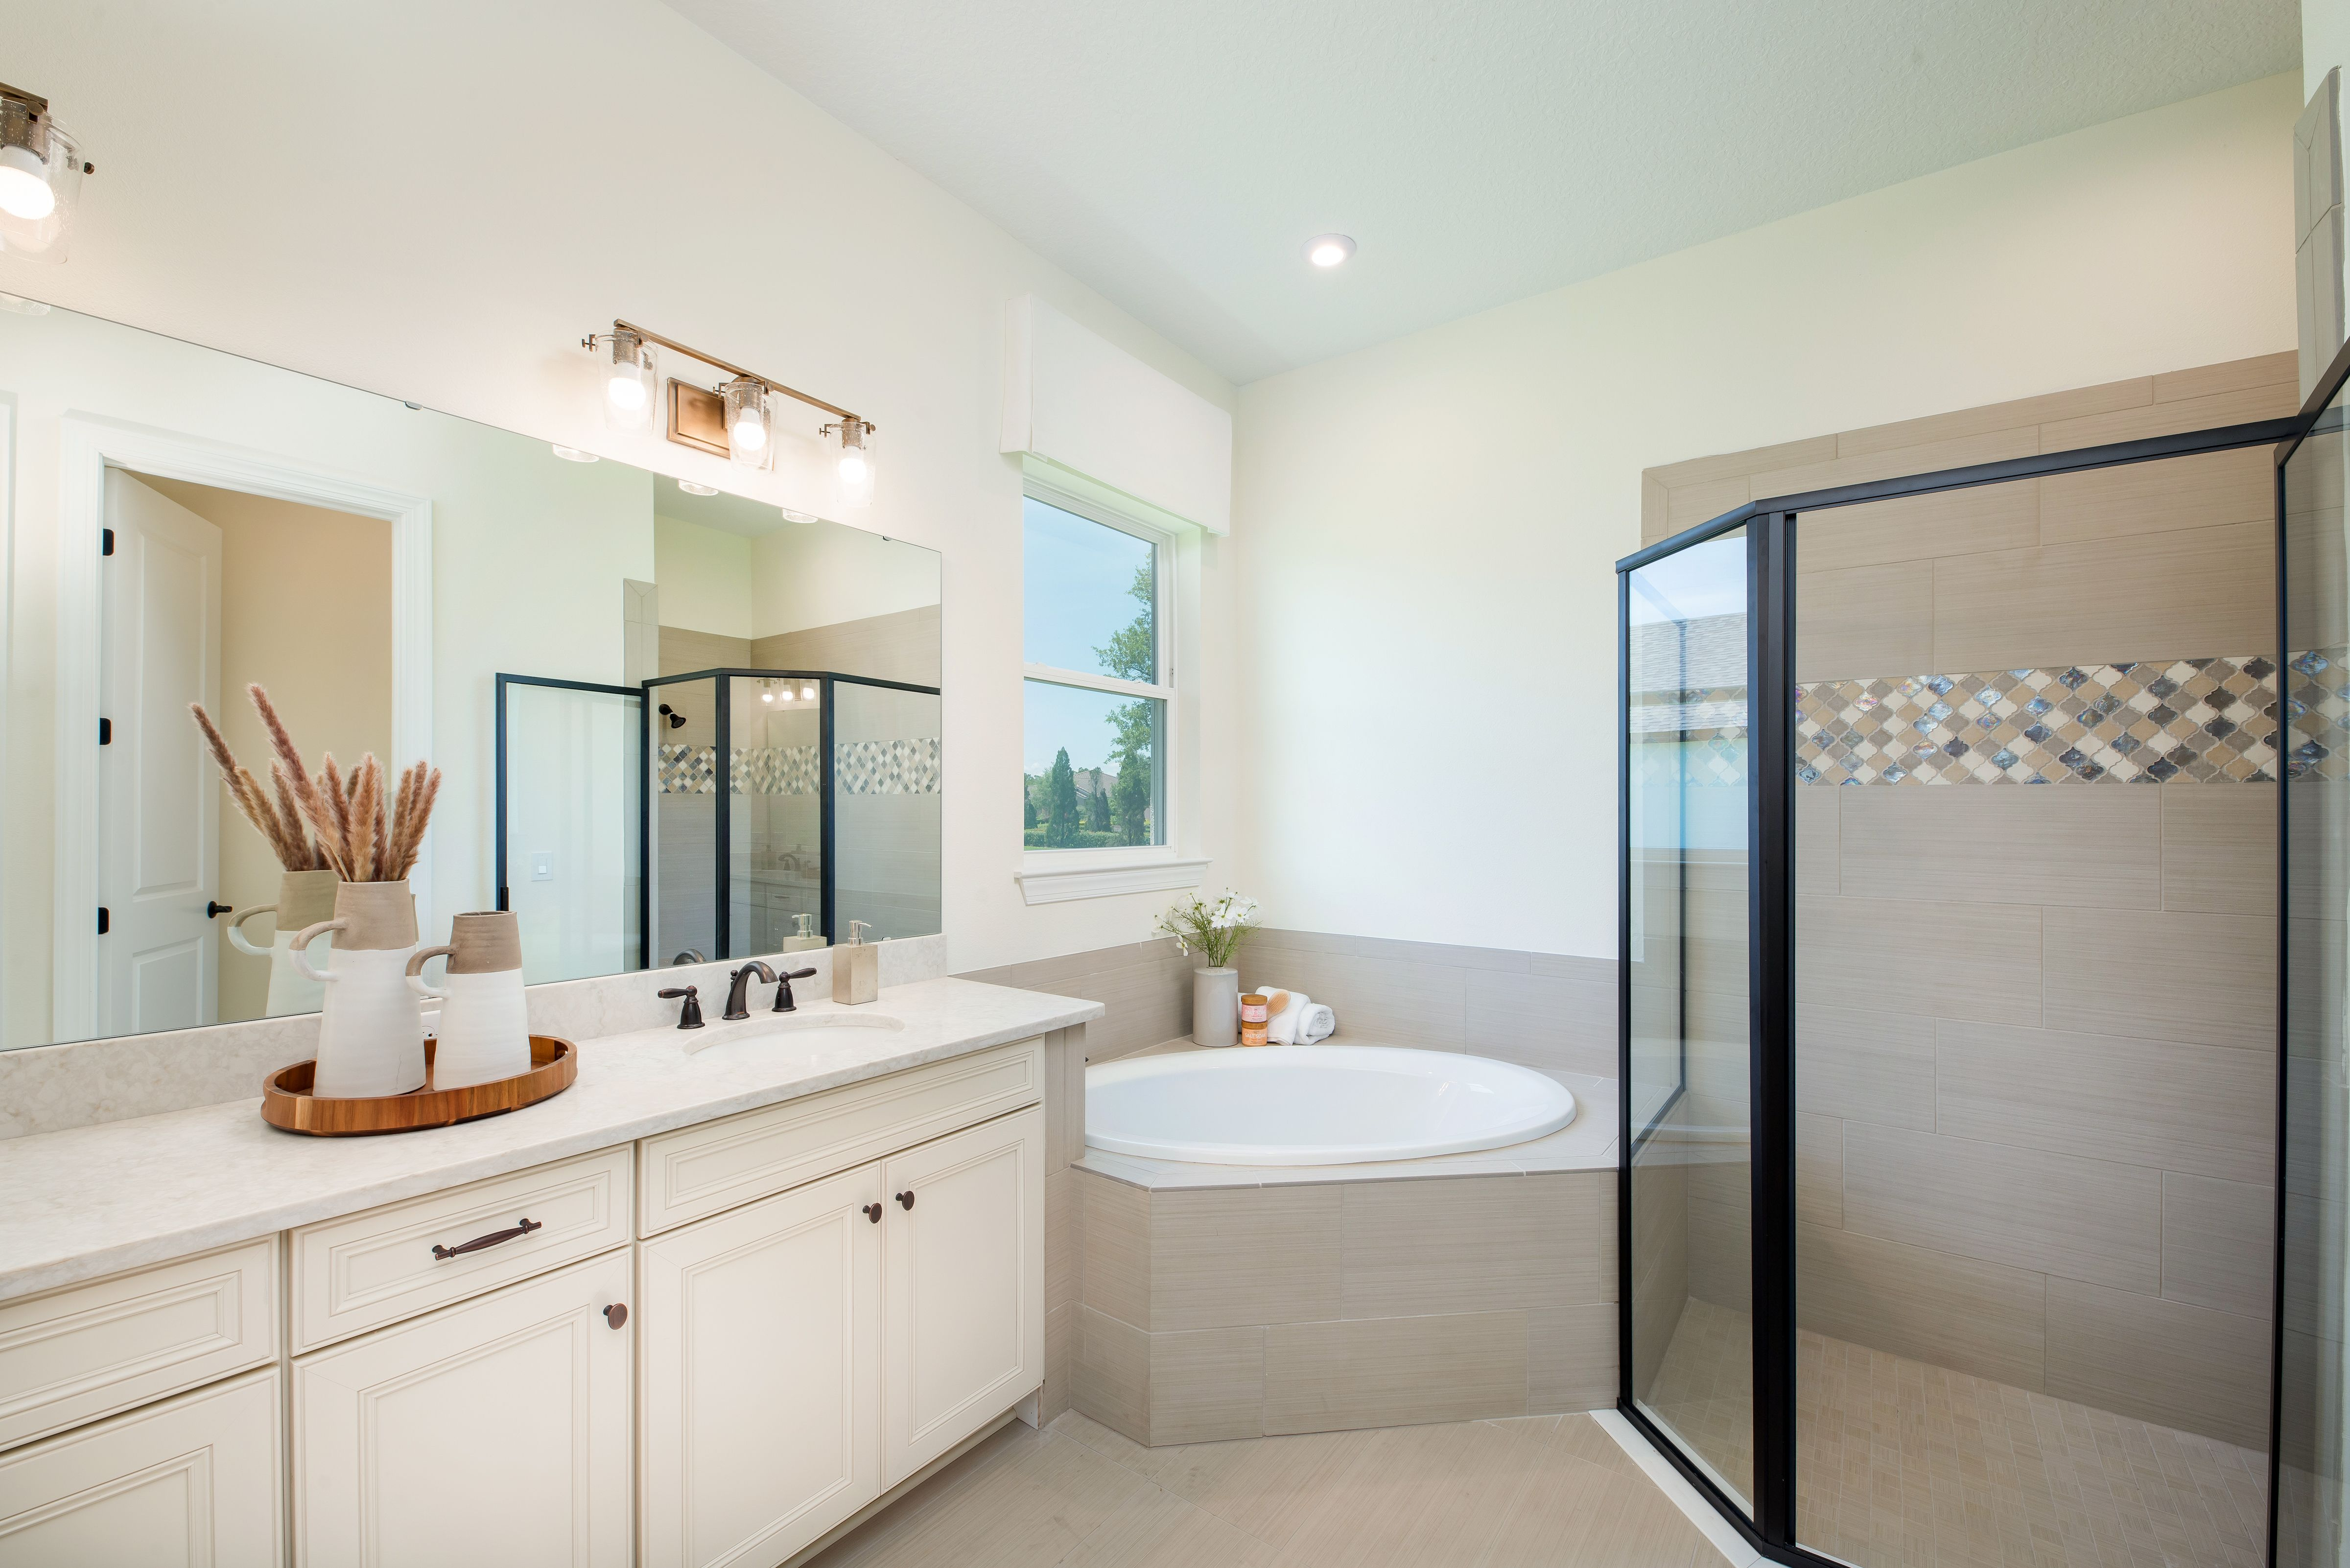 Bathroom featured in the Ambra By Taylor Morrison in Naples, FL